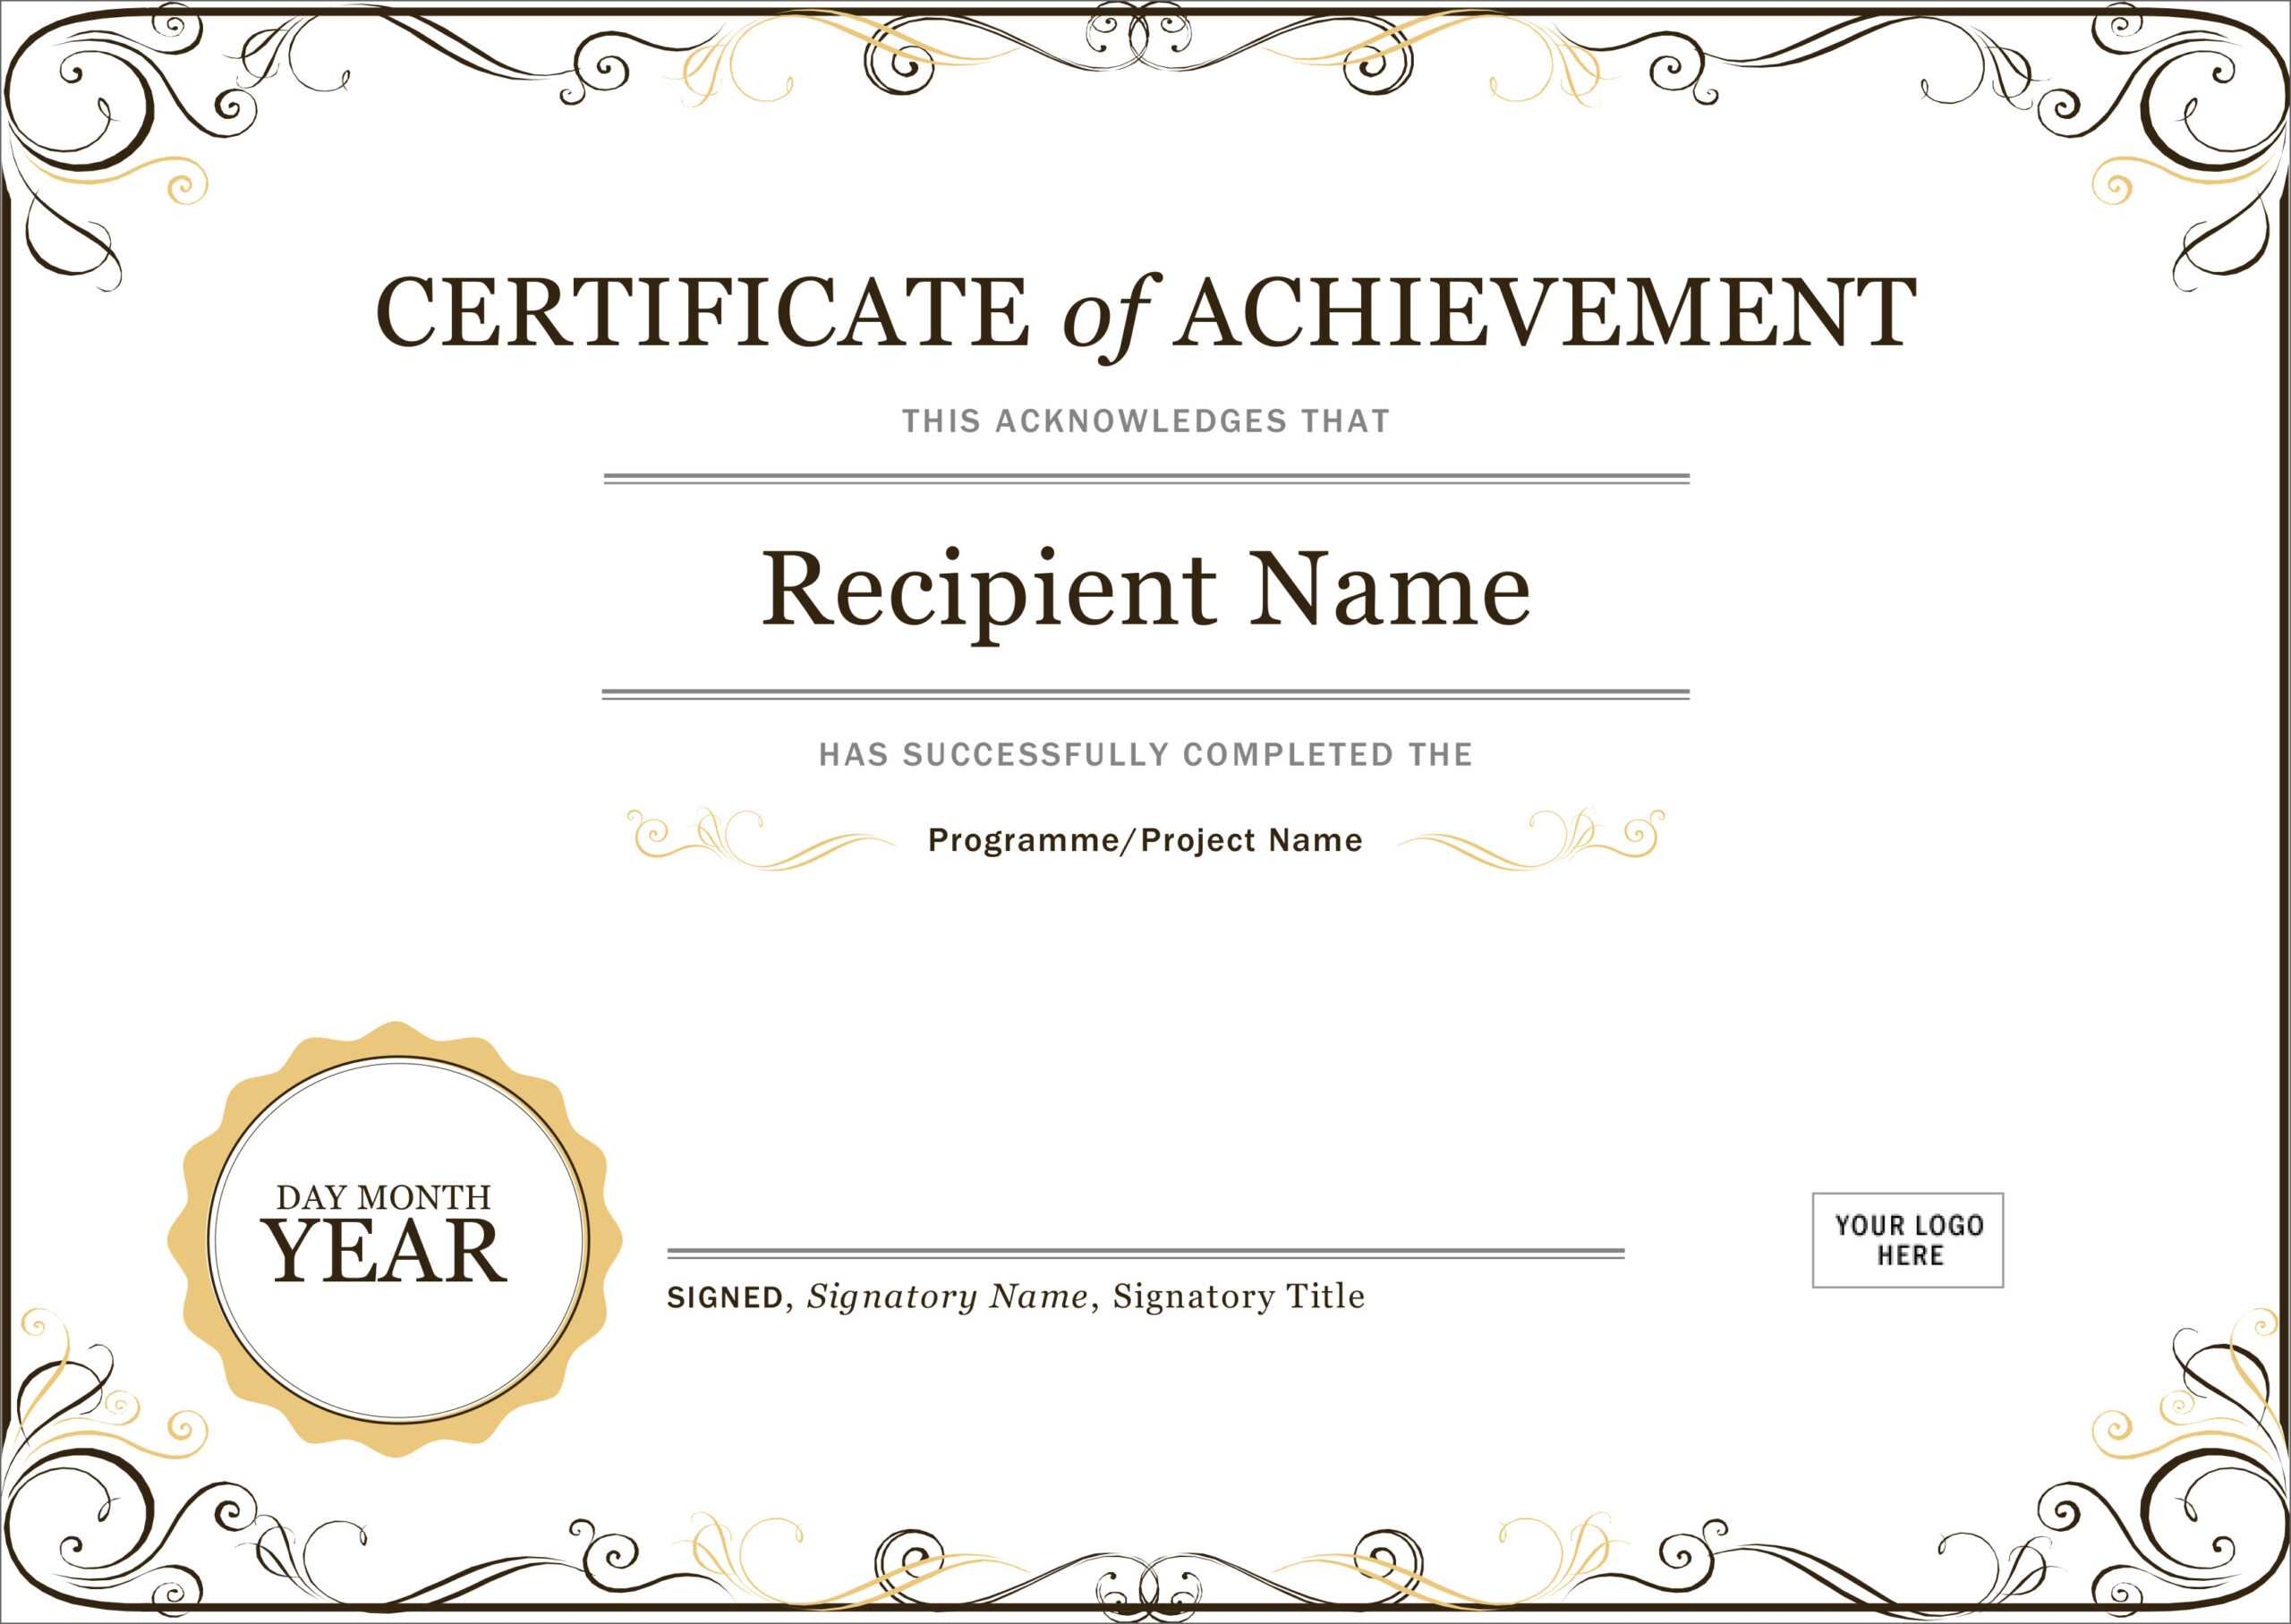 50 Free Creative Blank Certificate Templates In Psd With Regard To Downloadable Certificate Templates For Microsoft Word